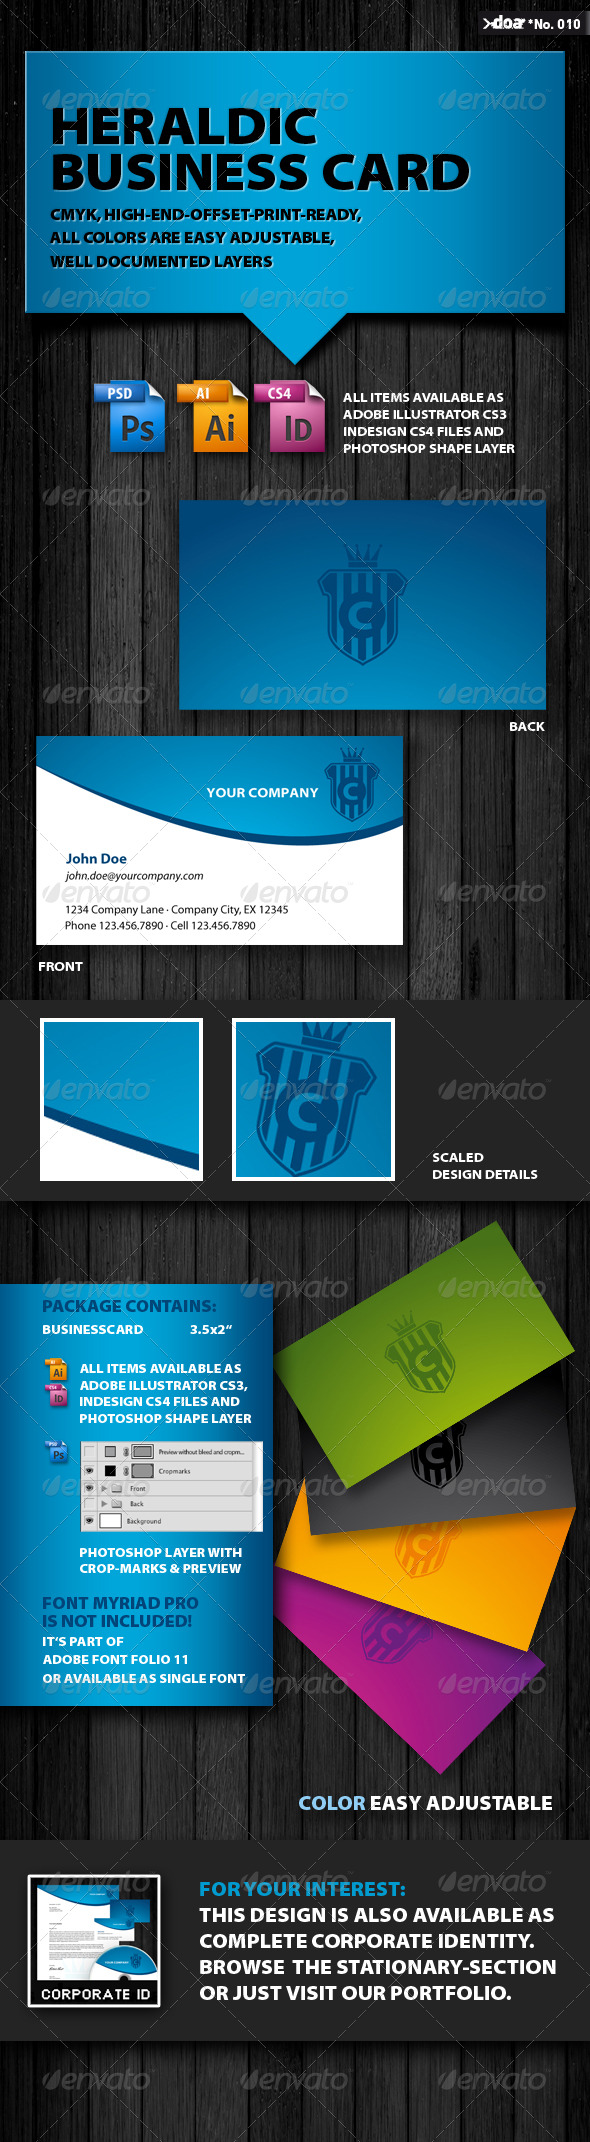 Indesign Business Card Template from previews.customer.envatousercontent.com